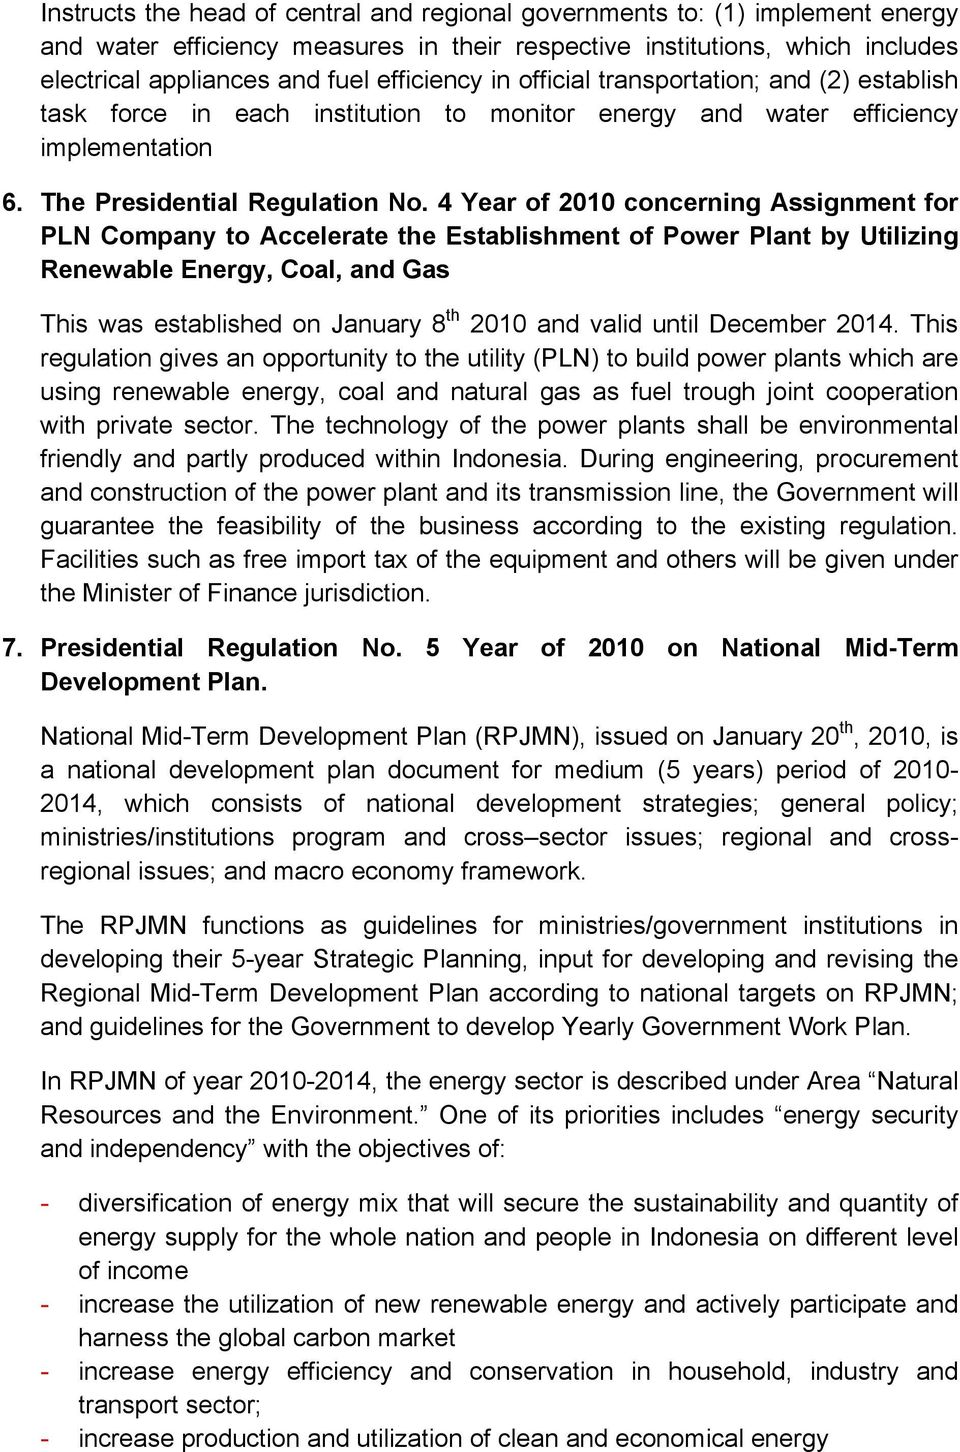 4 Year of 2010 concerning Assignment for PLN Company to Accelerate the Establishment of Power Plant by Utilizing Renewable Energy, Coal, and Gas This was established on January 8 th 2010 and valid